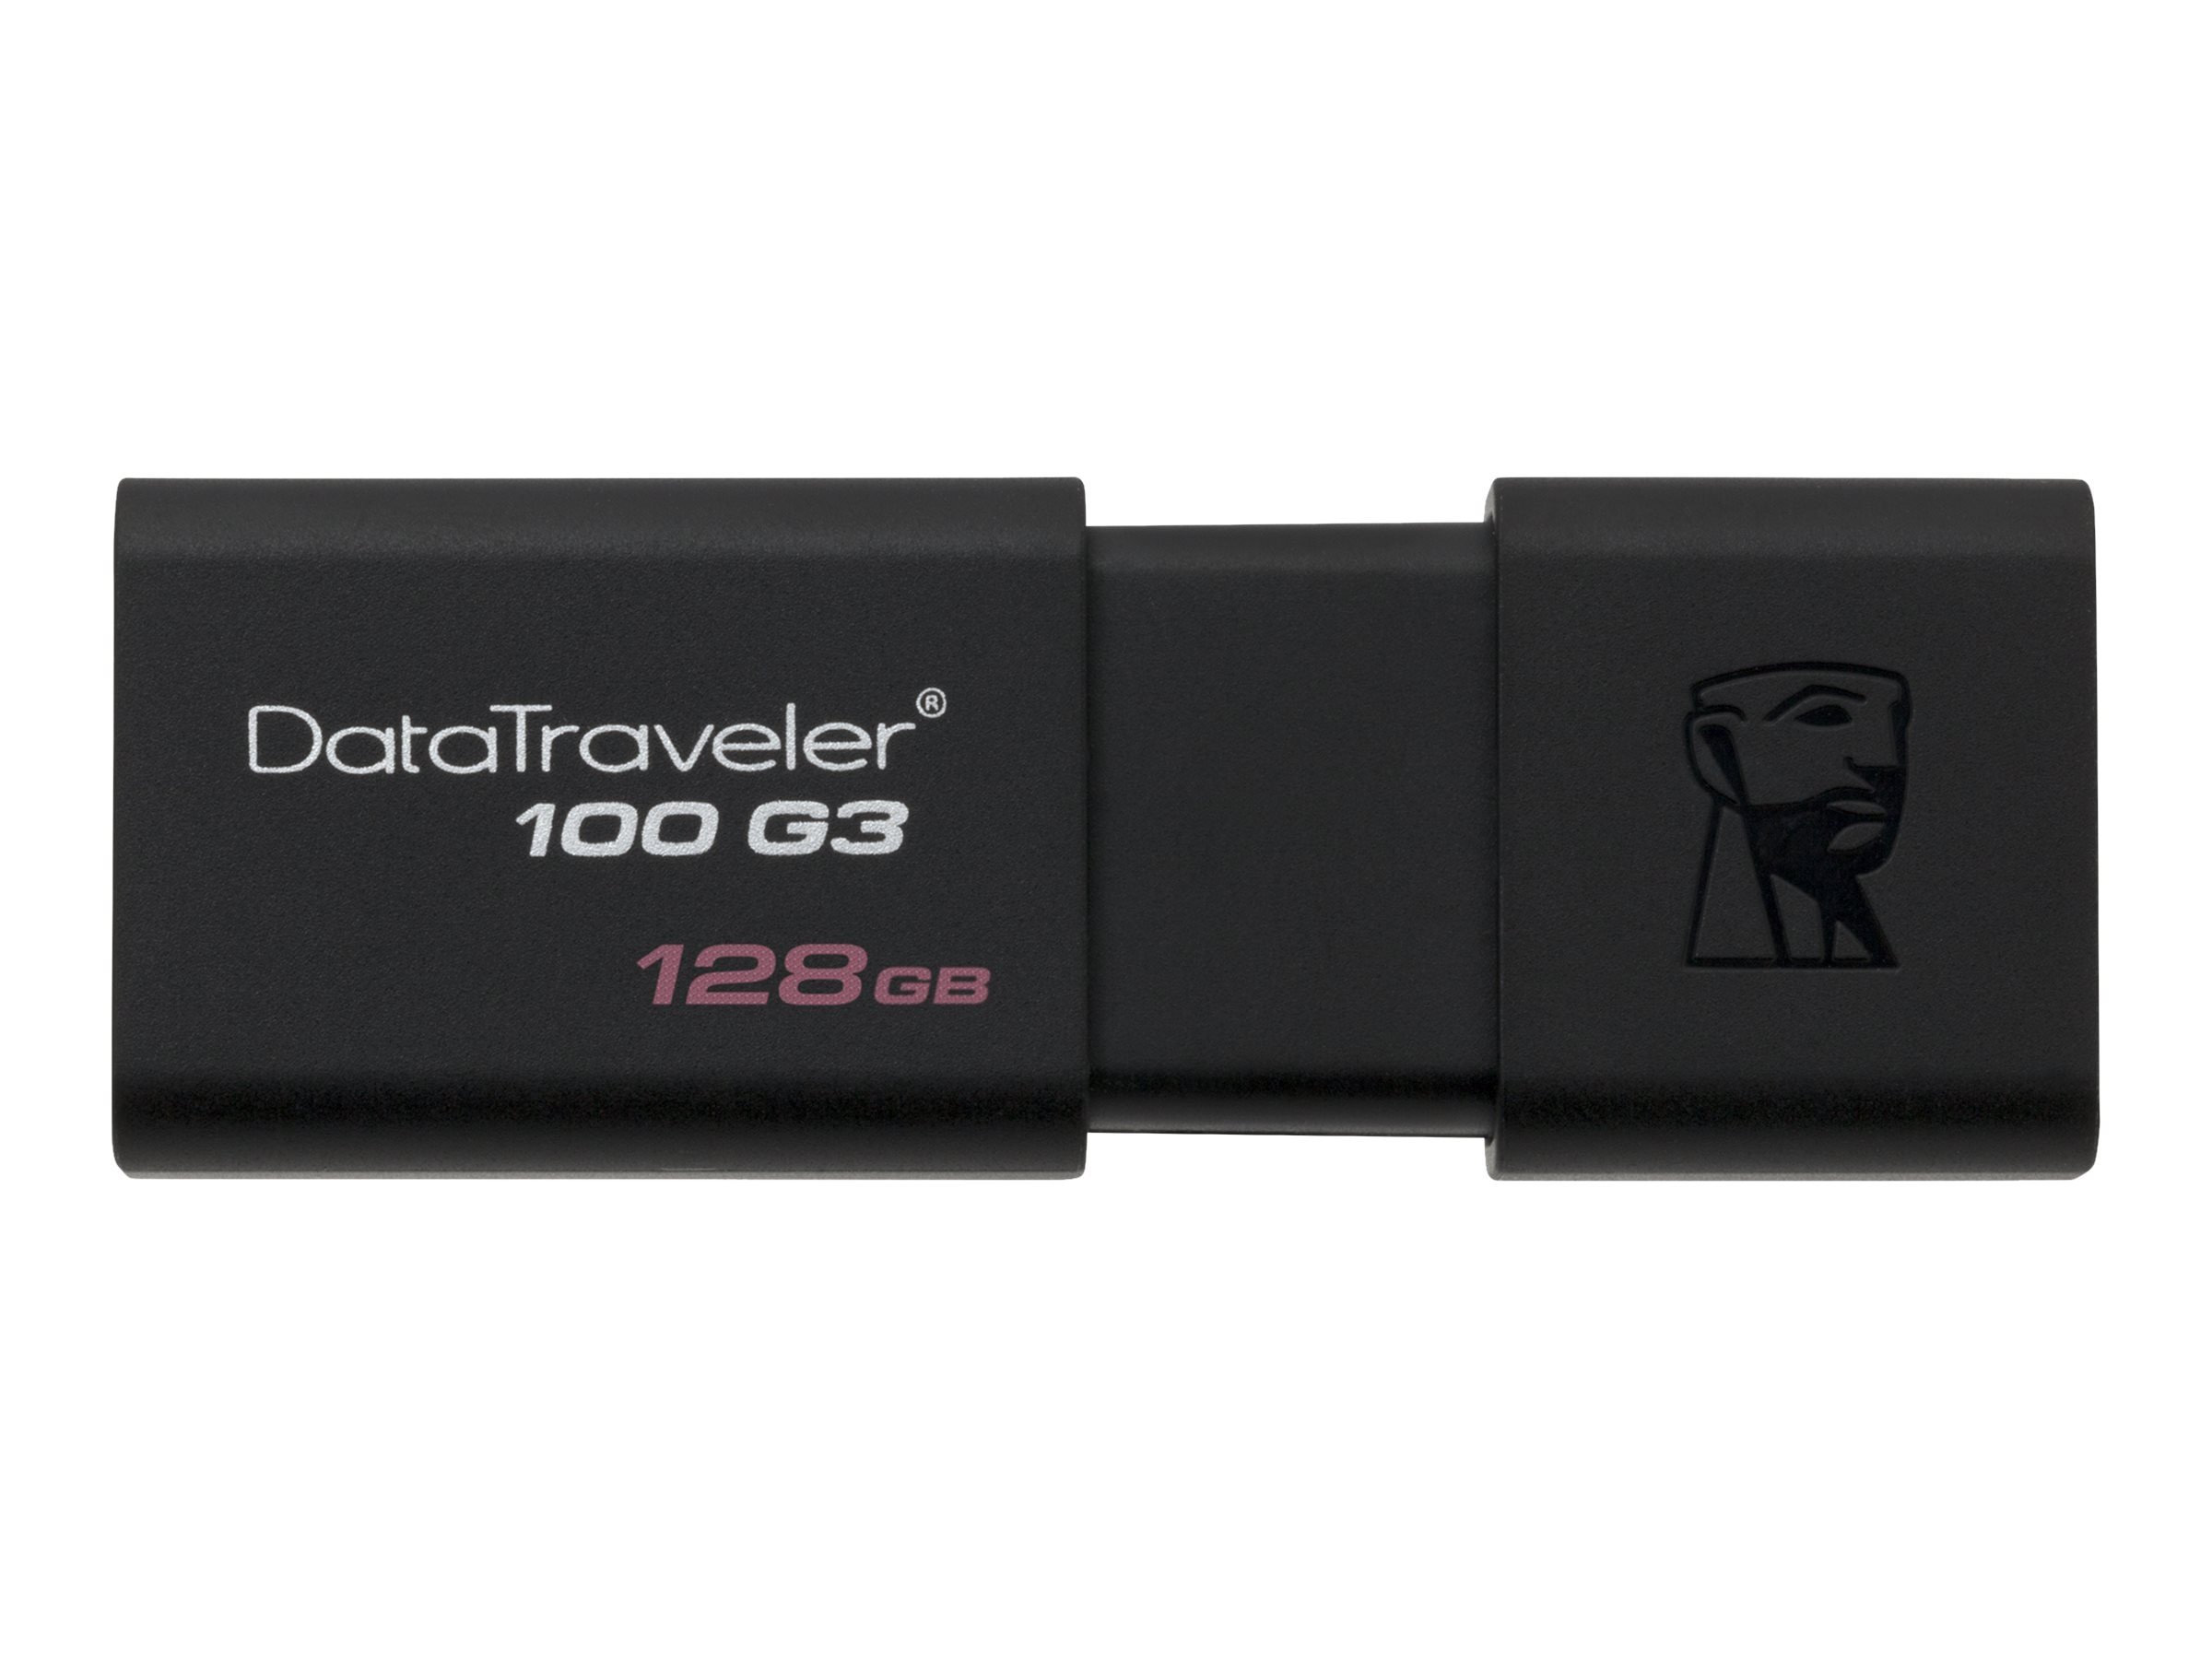 Kingston 128GB DataTraveler 100 G3 USB 3.0 Flash Drive, DT100G3/128GB, 30761222, Flash Drives